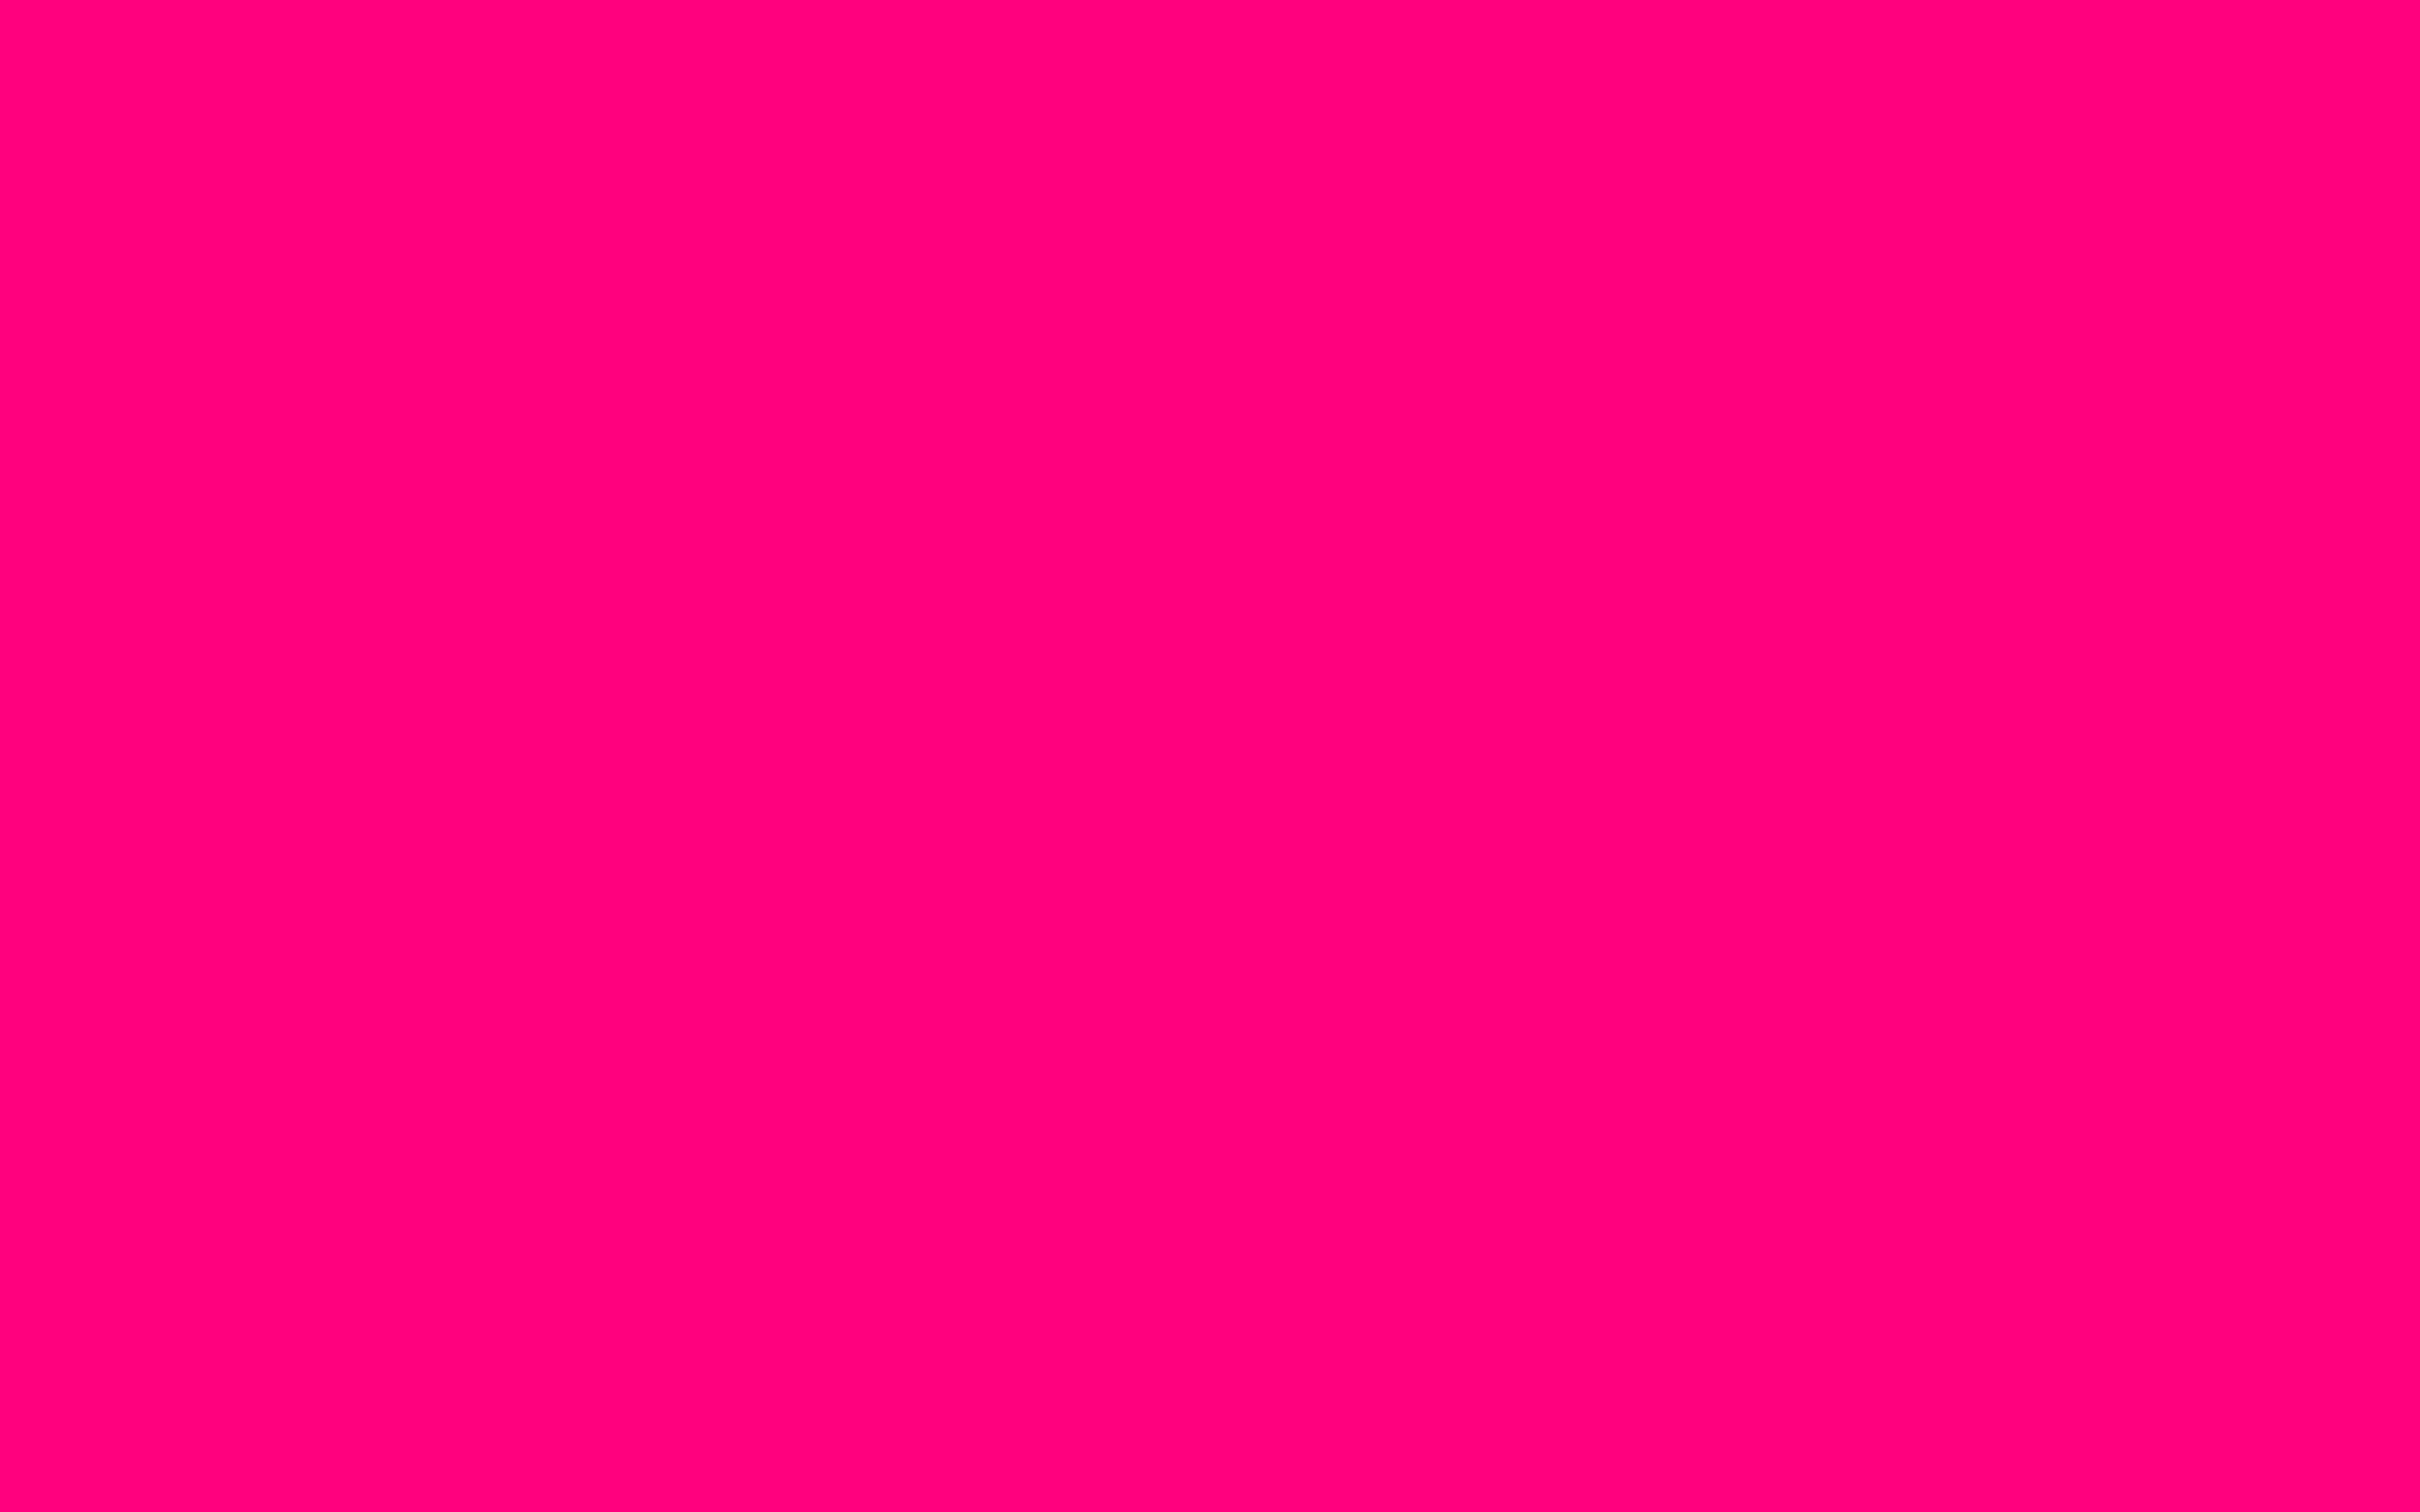 Bright Pink Background ·①